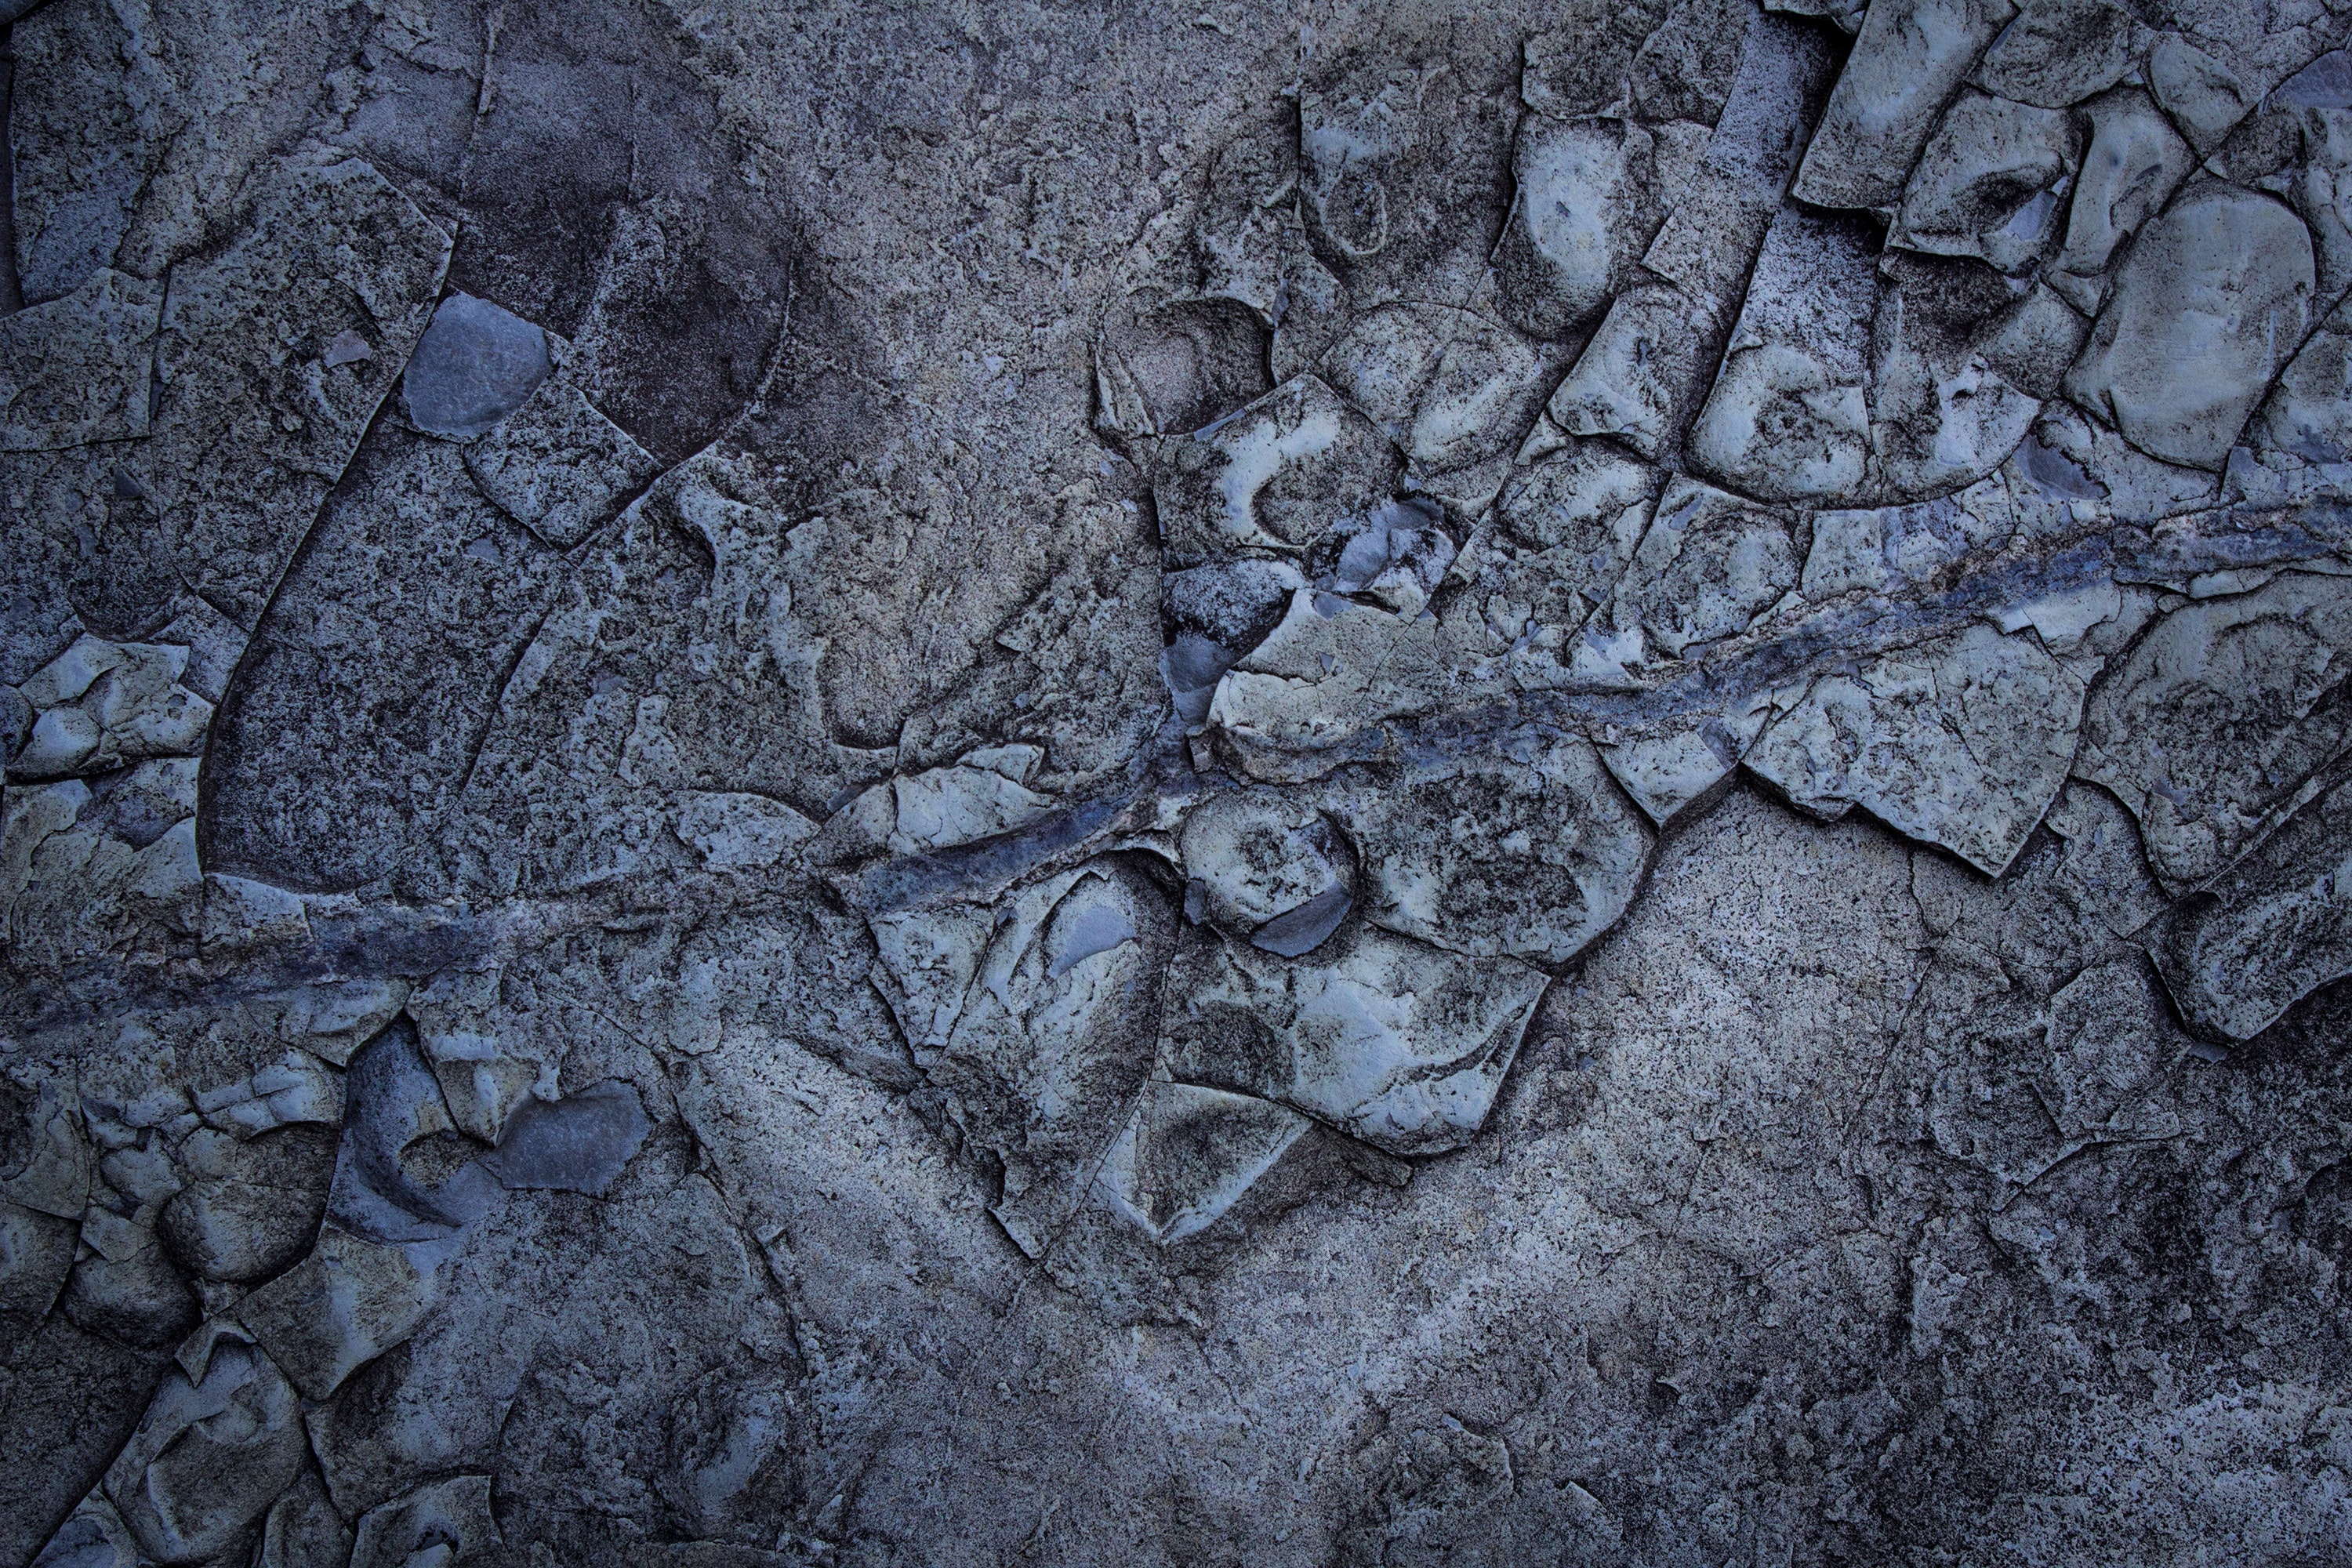 Gray and Blue Land Form, Abstract, Dirty, Texture, Surface, HQ Photo